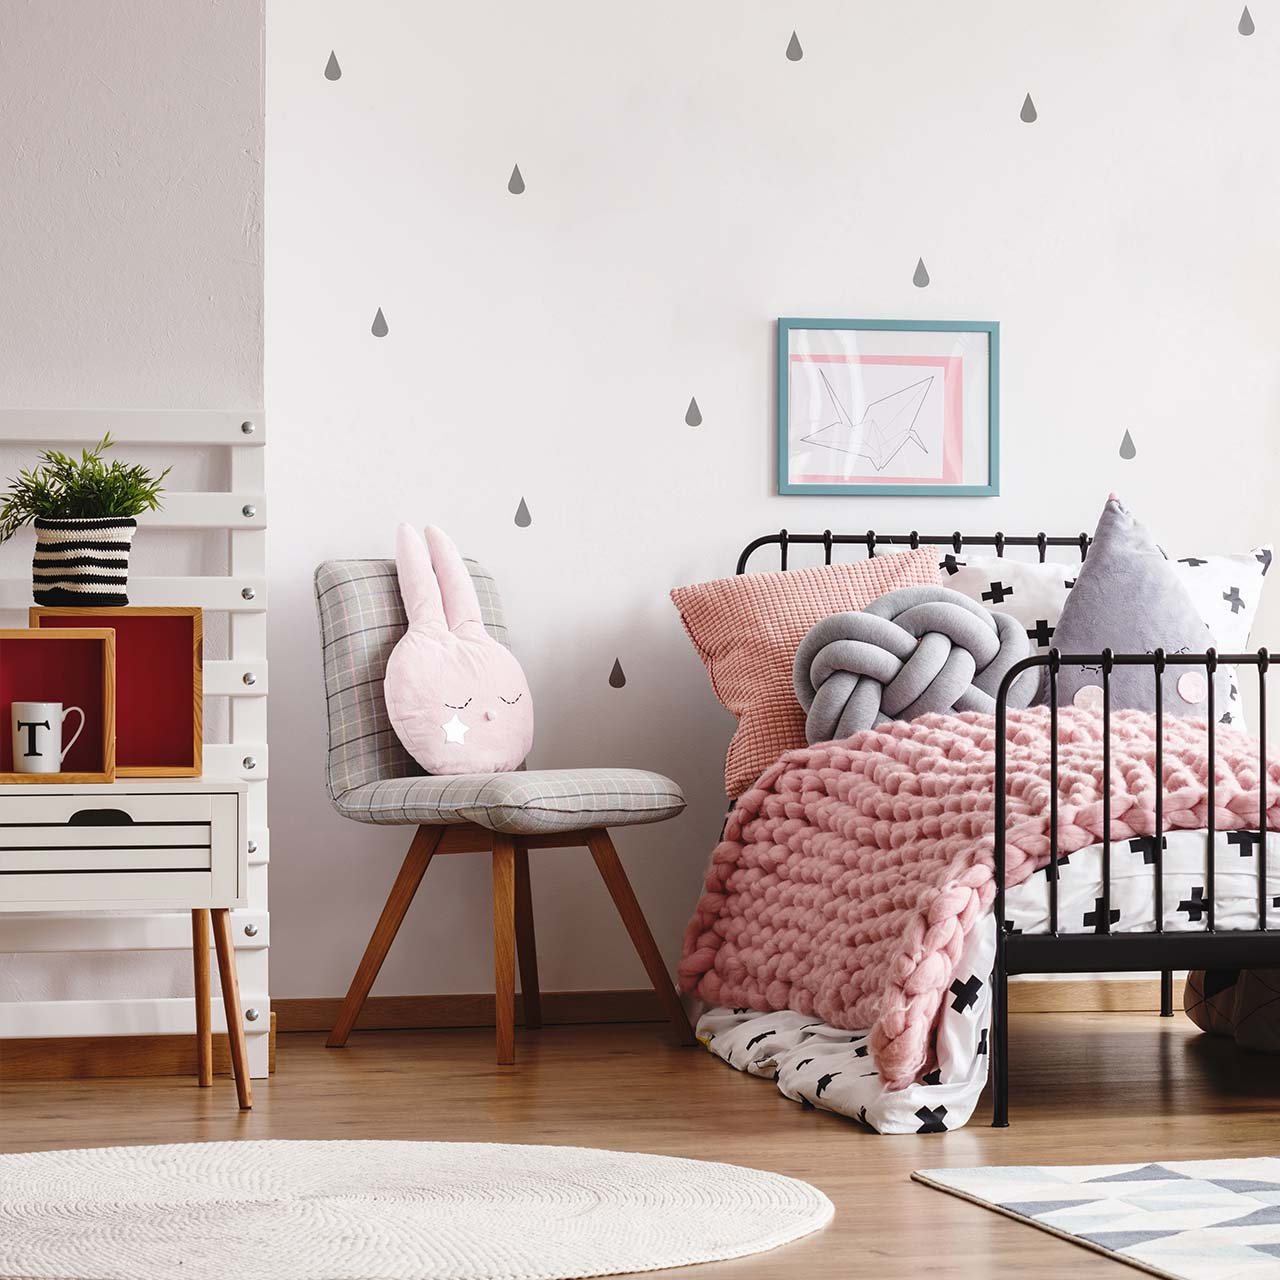 Latest bedroom design is a industrial style bedroom design give you minimalism you need in your house